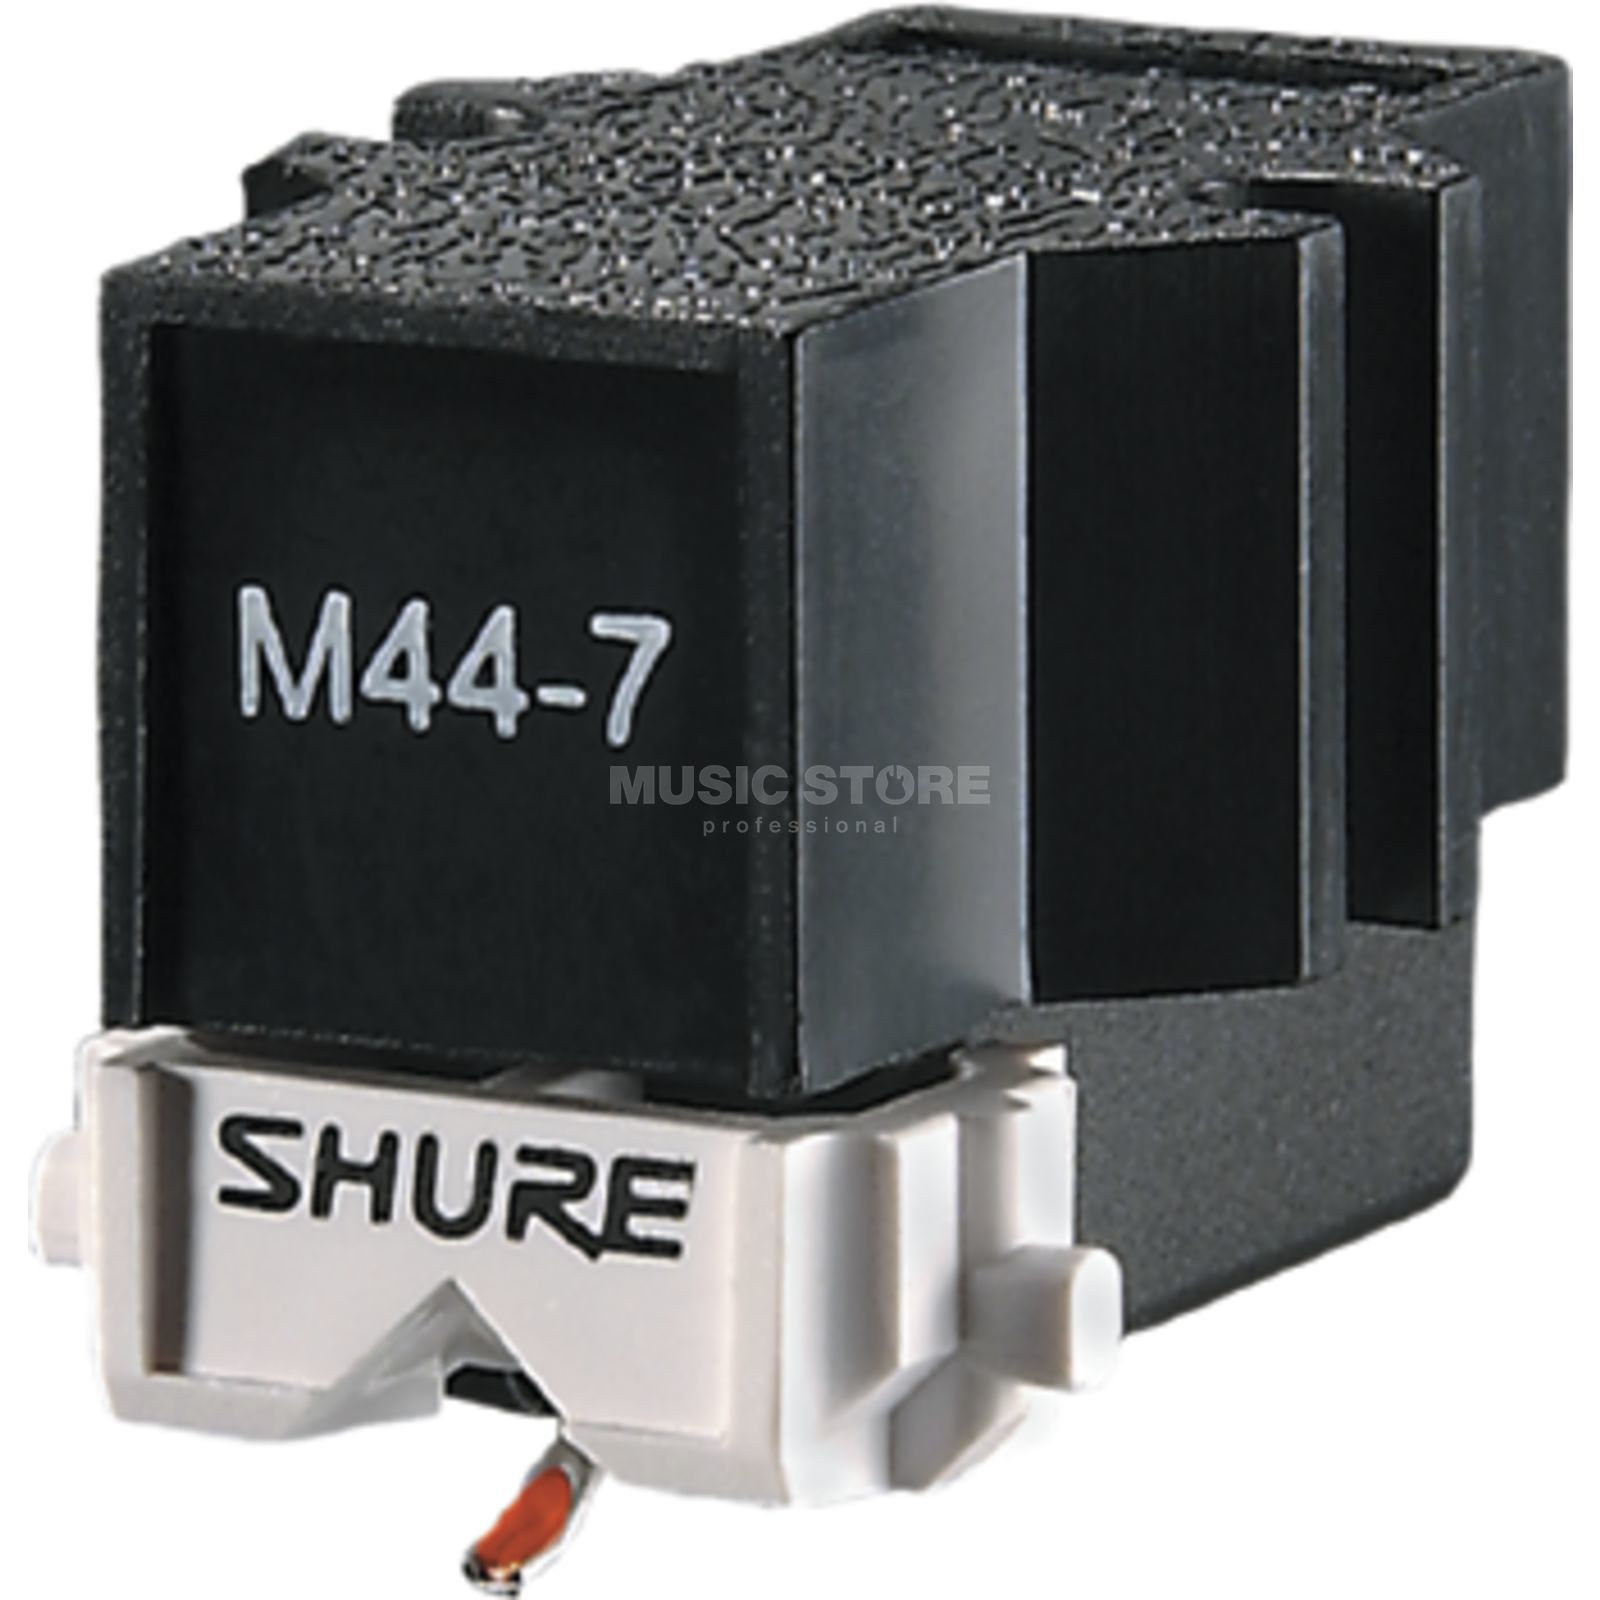 Shure M44-7 Cartridge and Stylus    Изображение товара